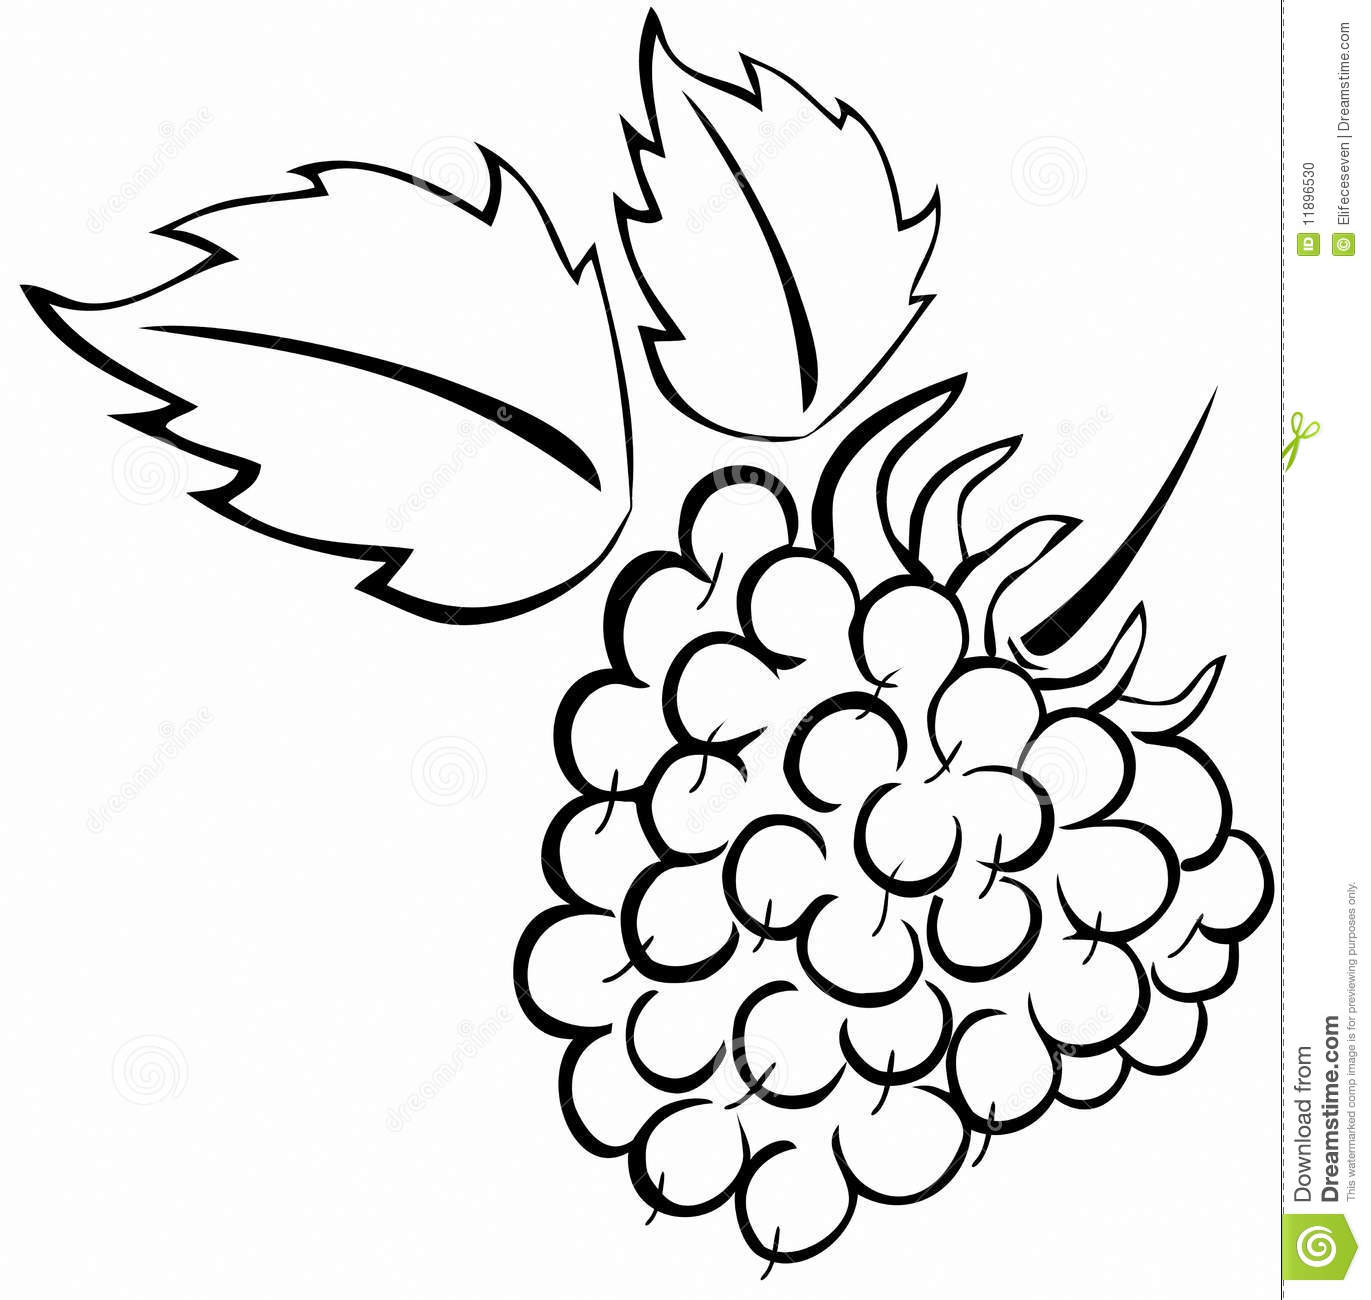 Raspberry 20clipart | Clipart Panda - Free Clipart Images